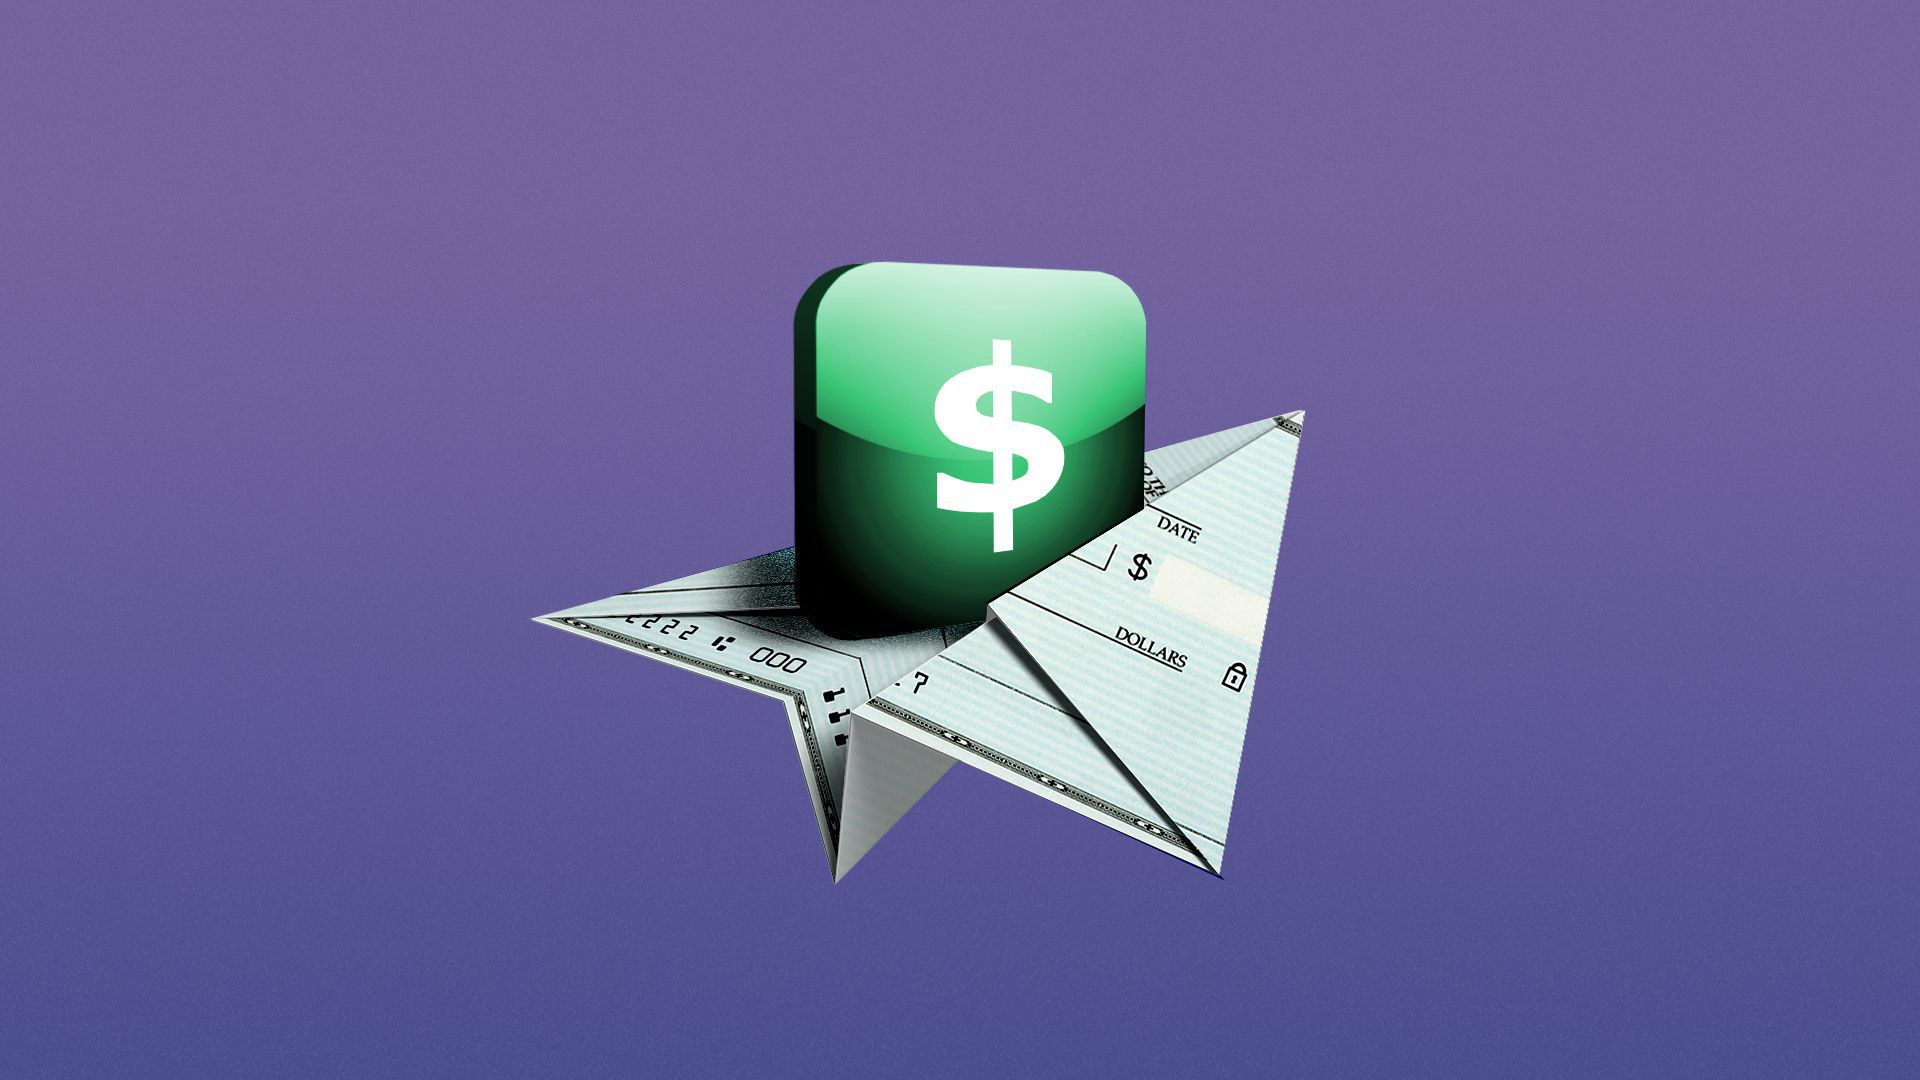 Illustration of a check folded into a paper airplane carrying an app button.